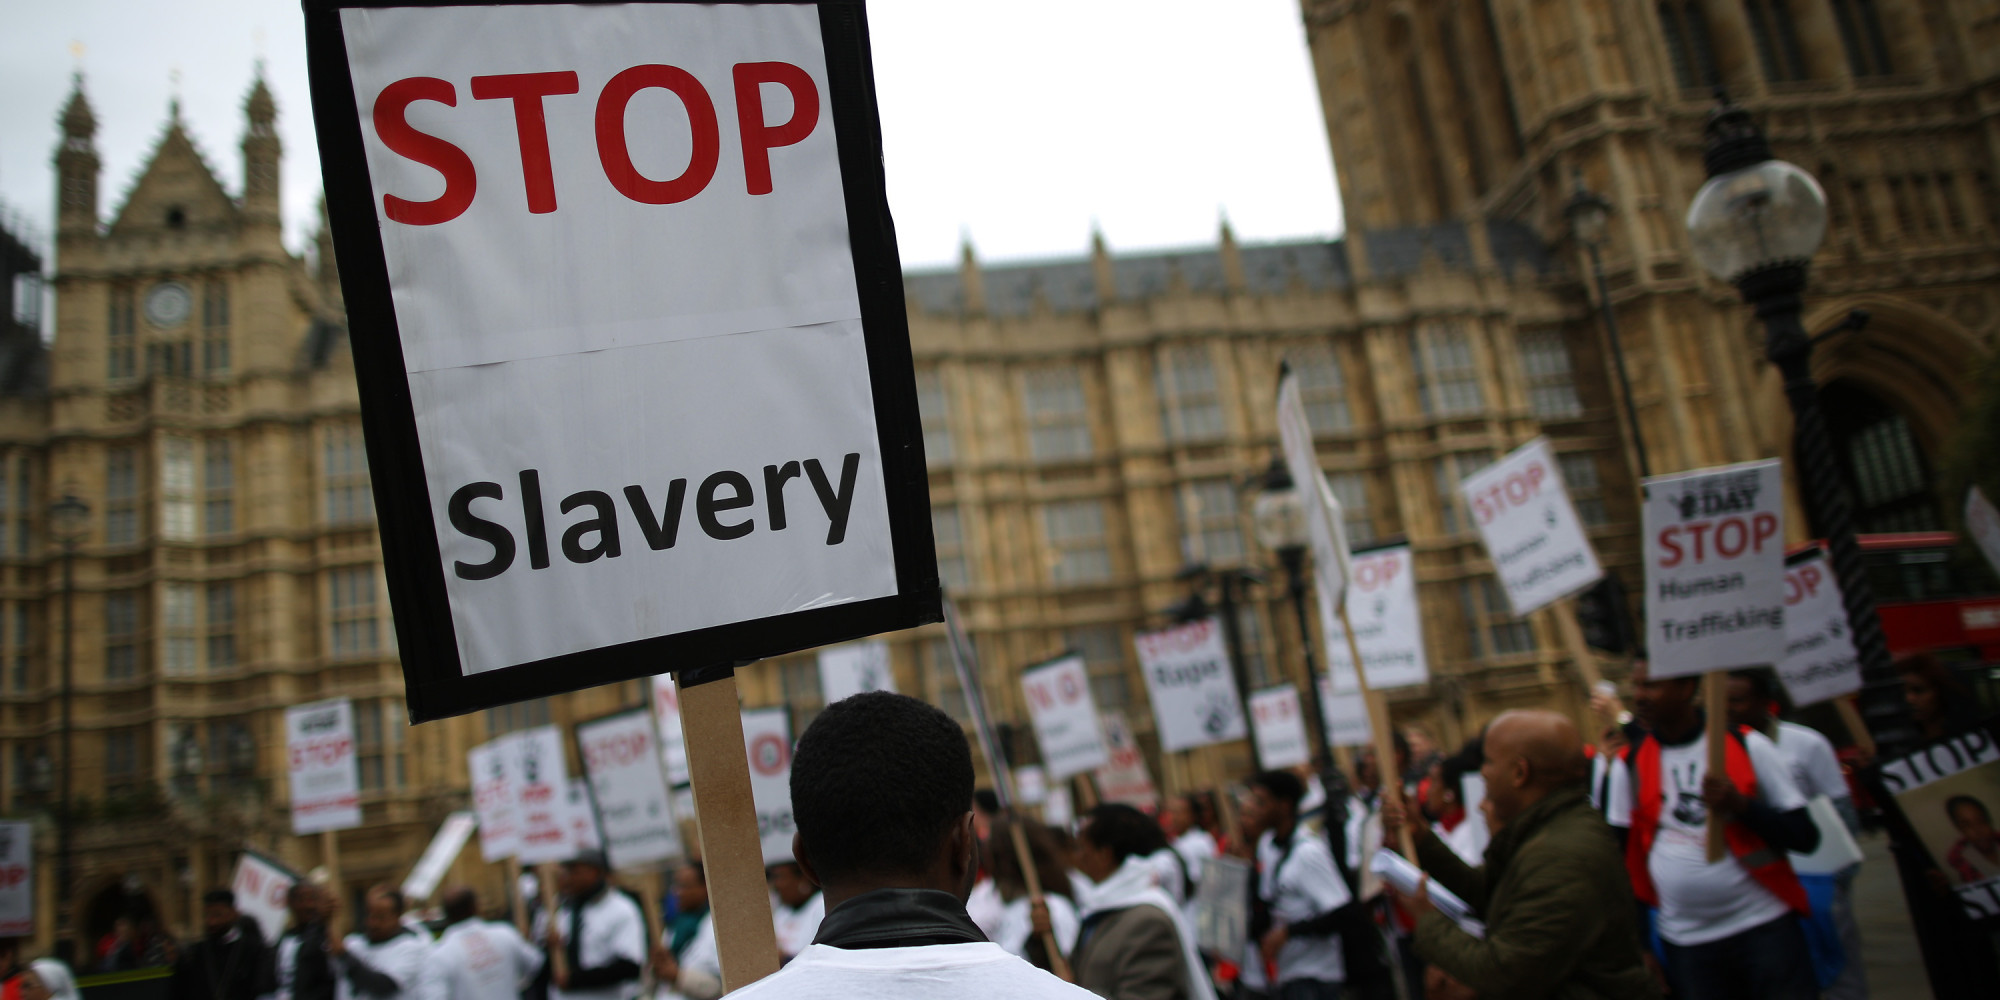 LONDON, ENGLAND - OCTOBER 18:  Anti-slavery activists rally outside Parliament on October 18, 2013 in London, England. Anti-slavery day falls on October 18th every year and provides an opportunity to draw attention to the scale and scope of human trafficking.  (Photo by Peter Macdiarmid/Getty Images)